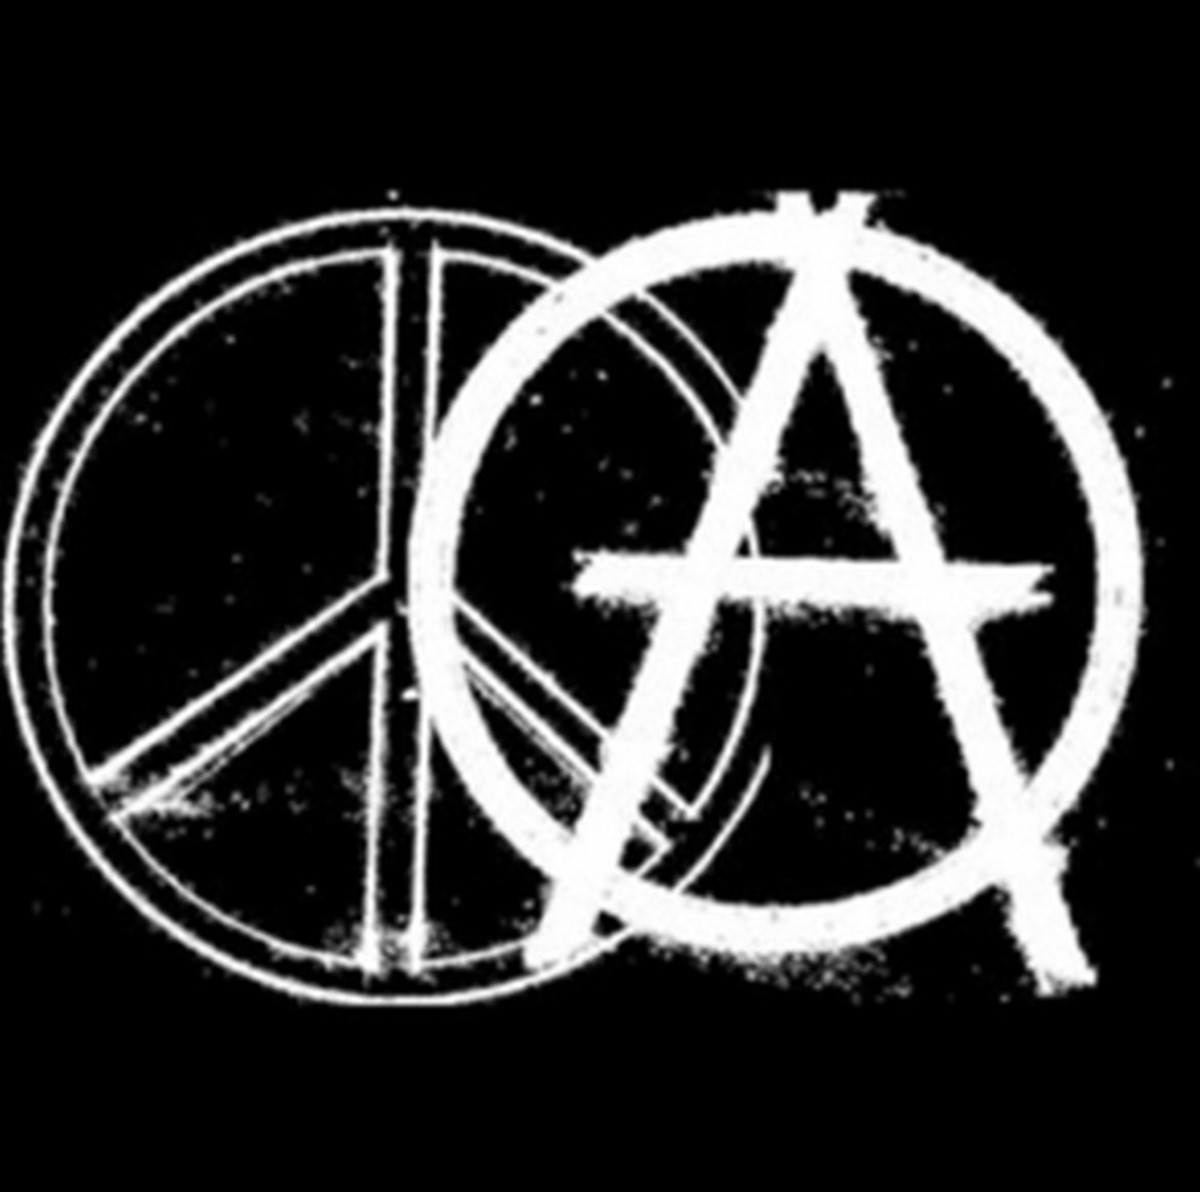 Anarchy and Peace -- No coercion, intimidation or fraud allowed. Any other form of anarchy is just hatred, bullying and lying.